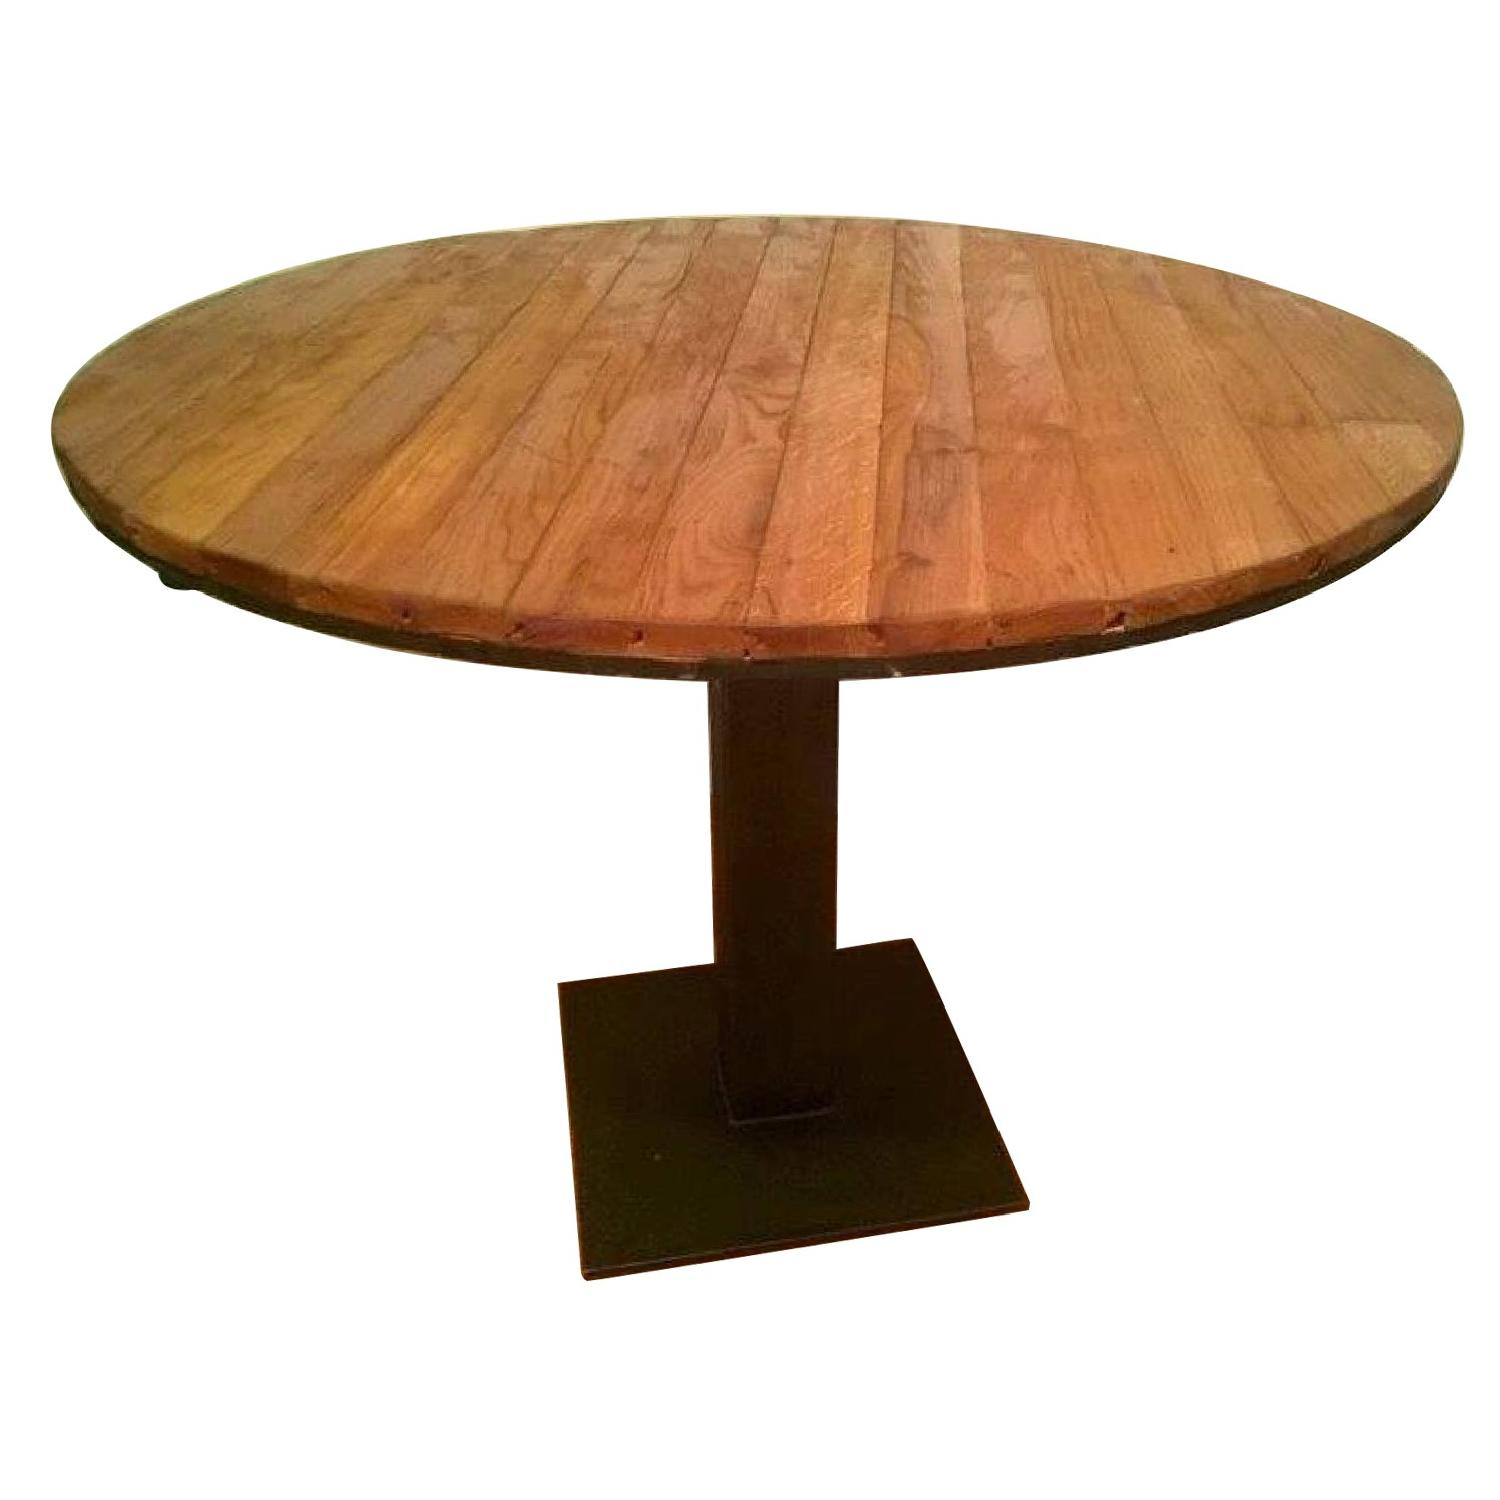 Refoundry Reclaimed Wood & Iron Round Table